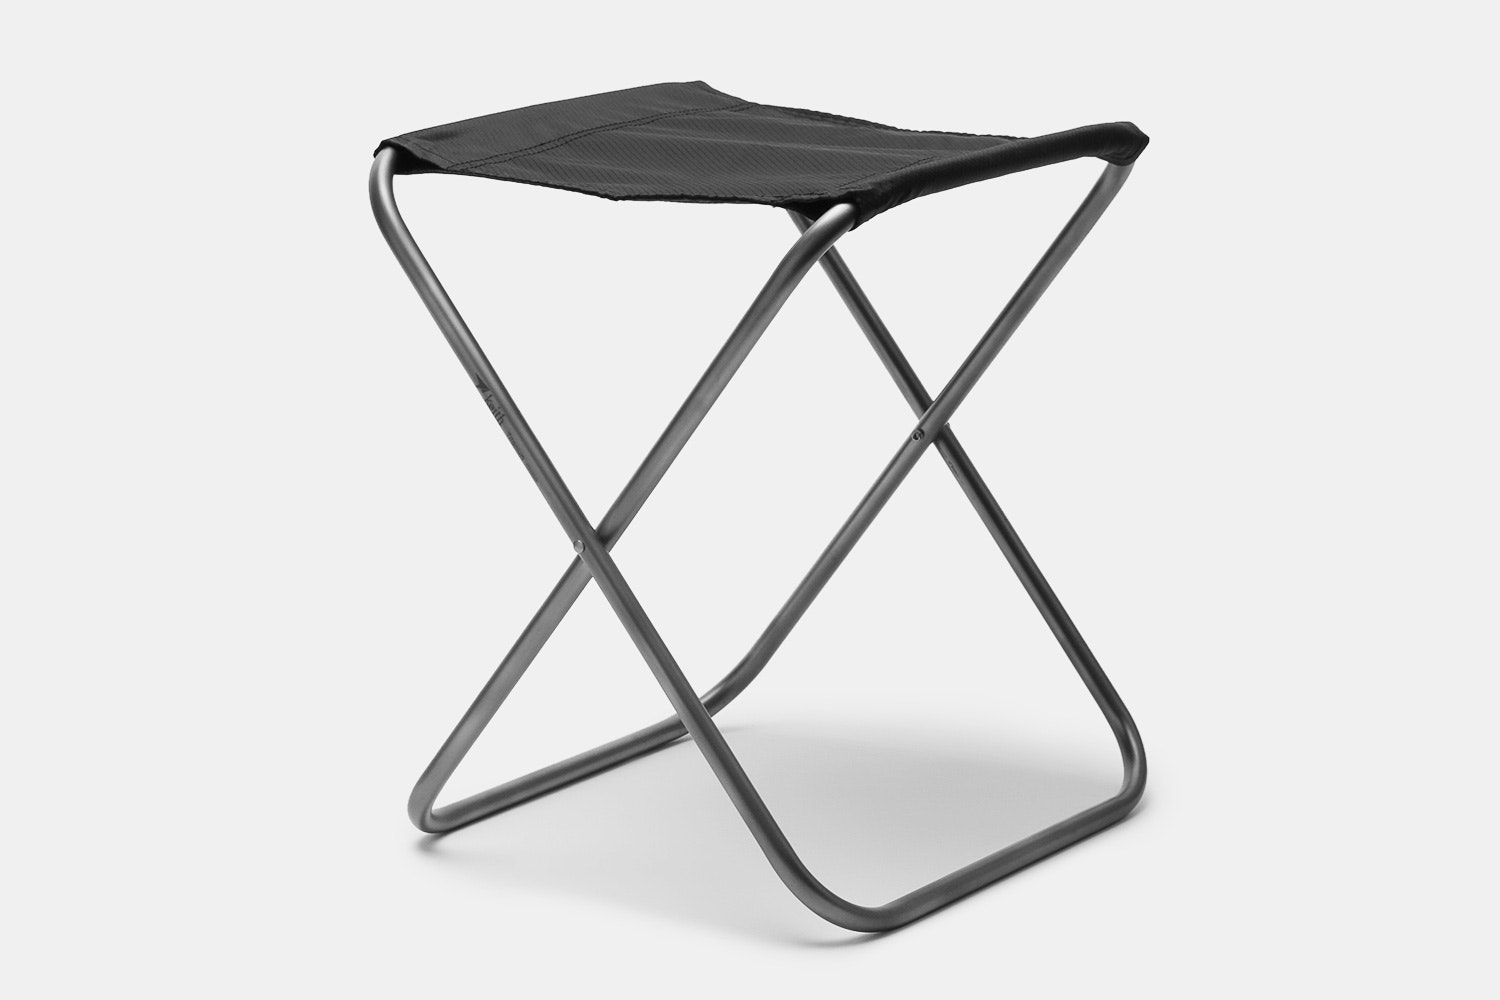 Keith Titanium Ti2501 Folding Stool